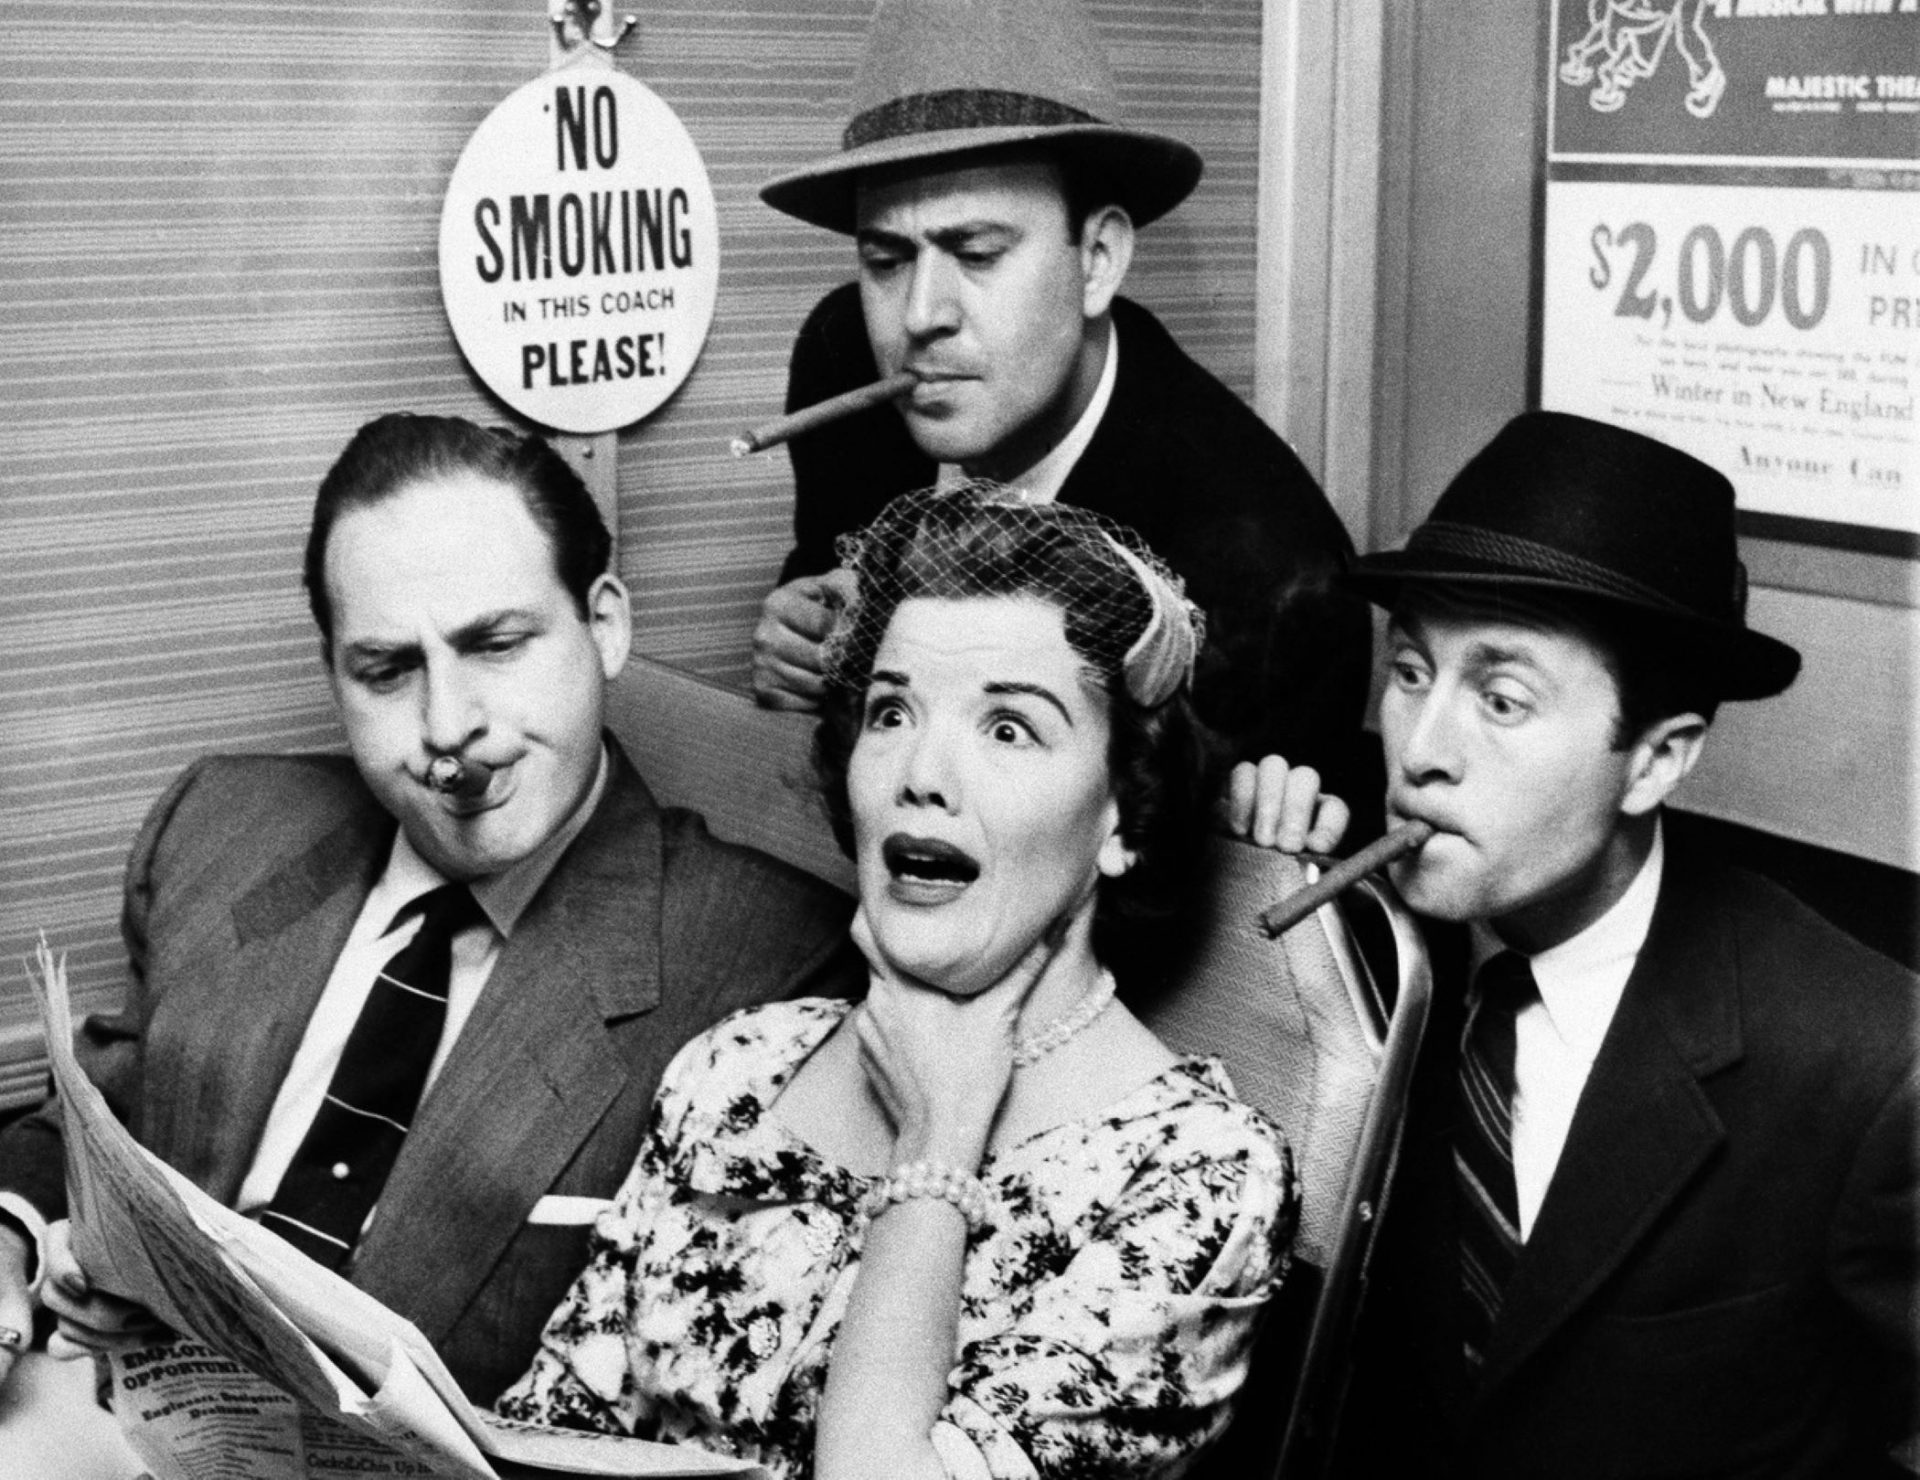 Reiner, top center, Sid Caesar, left, and Howard Morris, right, bother railroad commuter Nanette Fabray on an episode of the sketch comedy show Caesar's Hour in 1955.